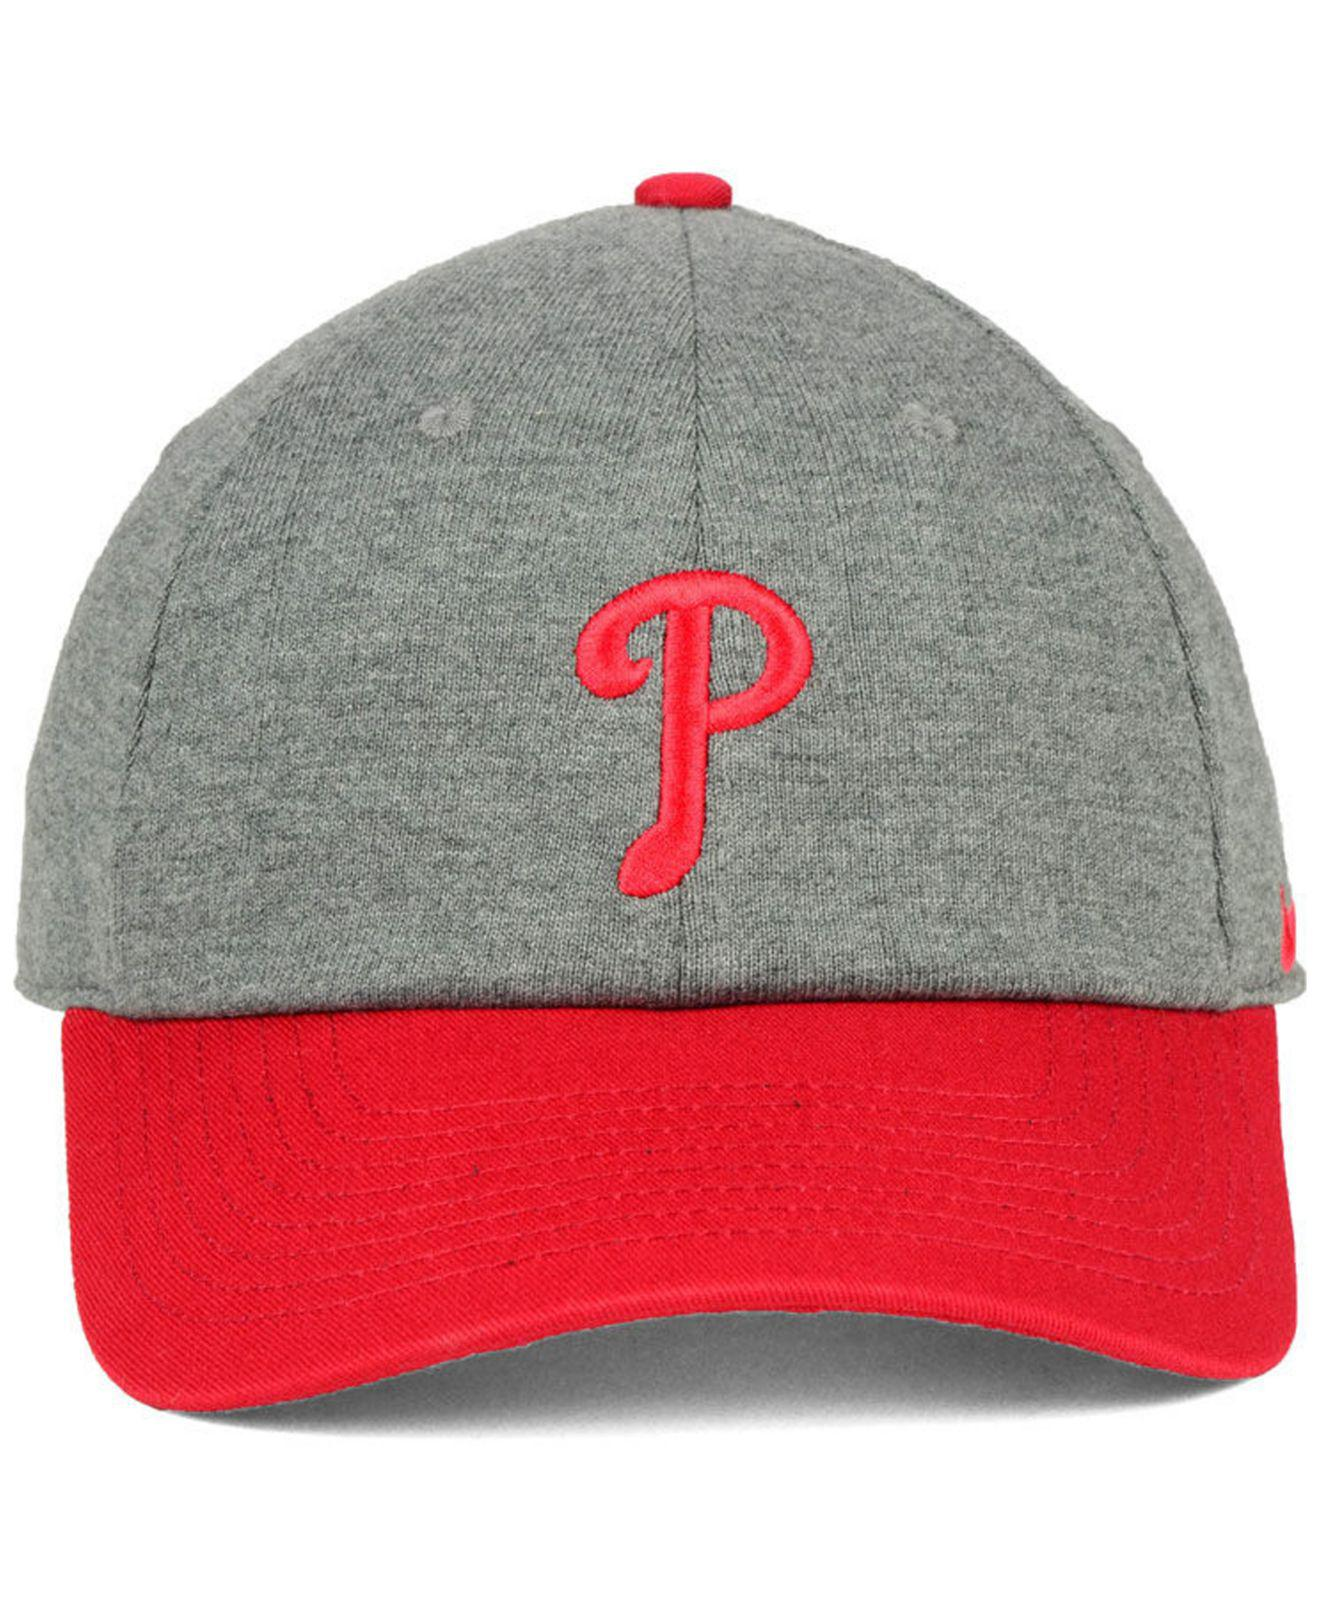 ac224ba94b727 Lyst - Nike Philadelphia Phillies 2 Tone Heather Cap for Men